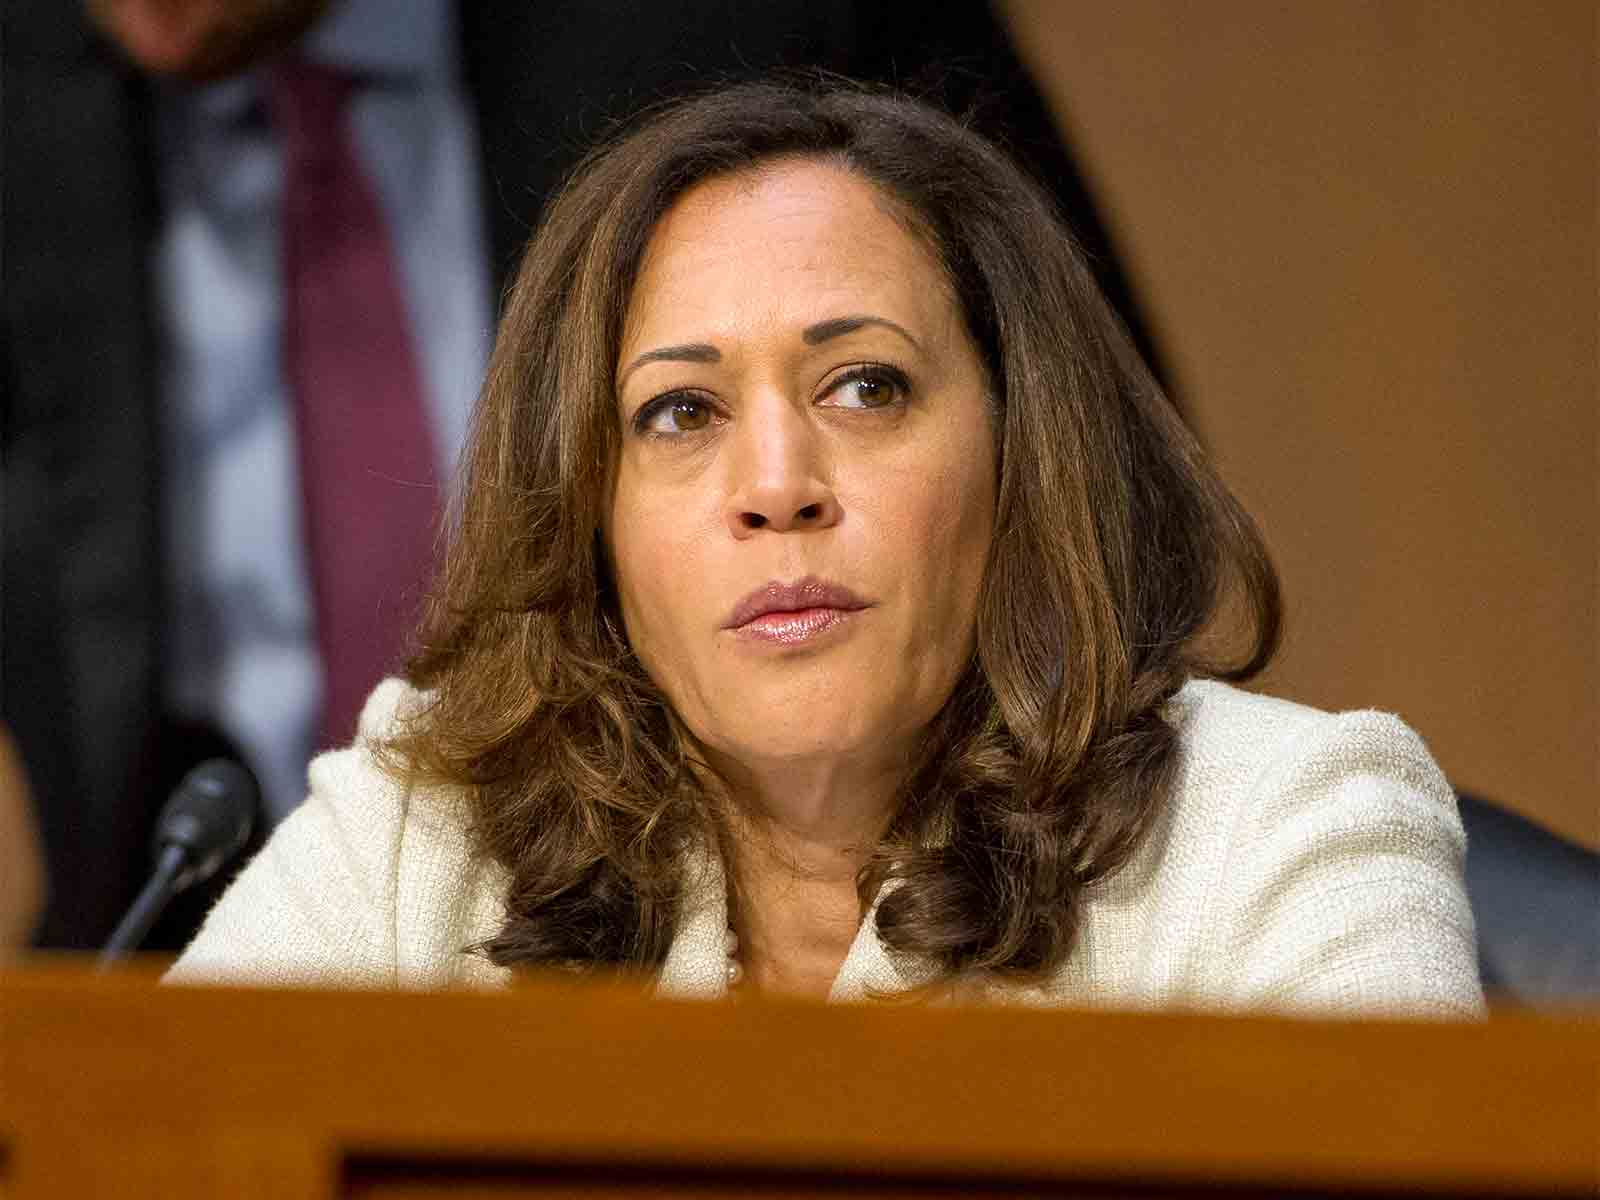 U.S. Senator Kamala Harris questions nominees for security positions in various government agencies before the U.S. Senate Select Committee on Intelligence on Capitol Hill in Washington, D.C. on July 19, 2017. (Ron Sachs/CNP/Sipa USA/TNS)